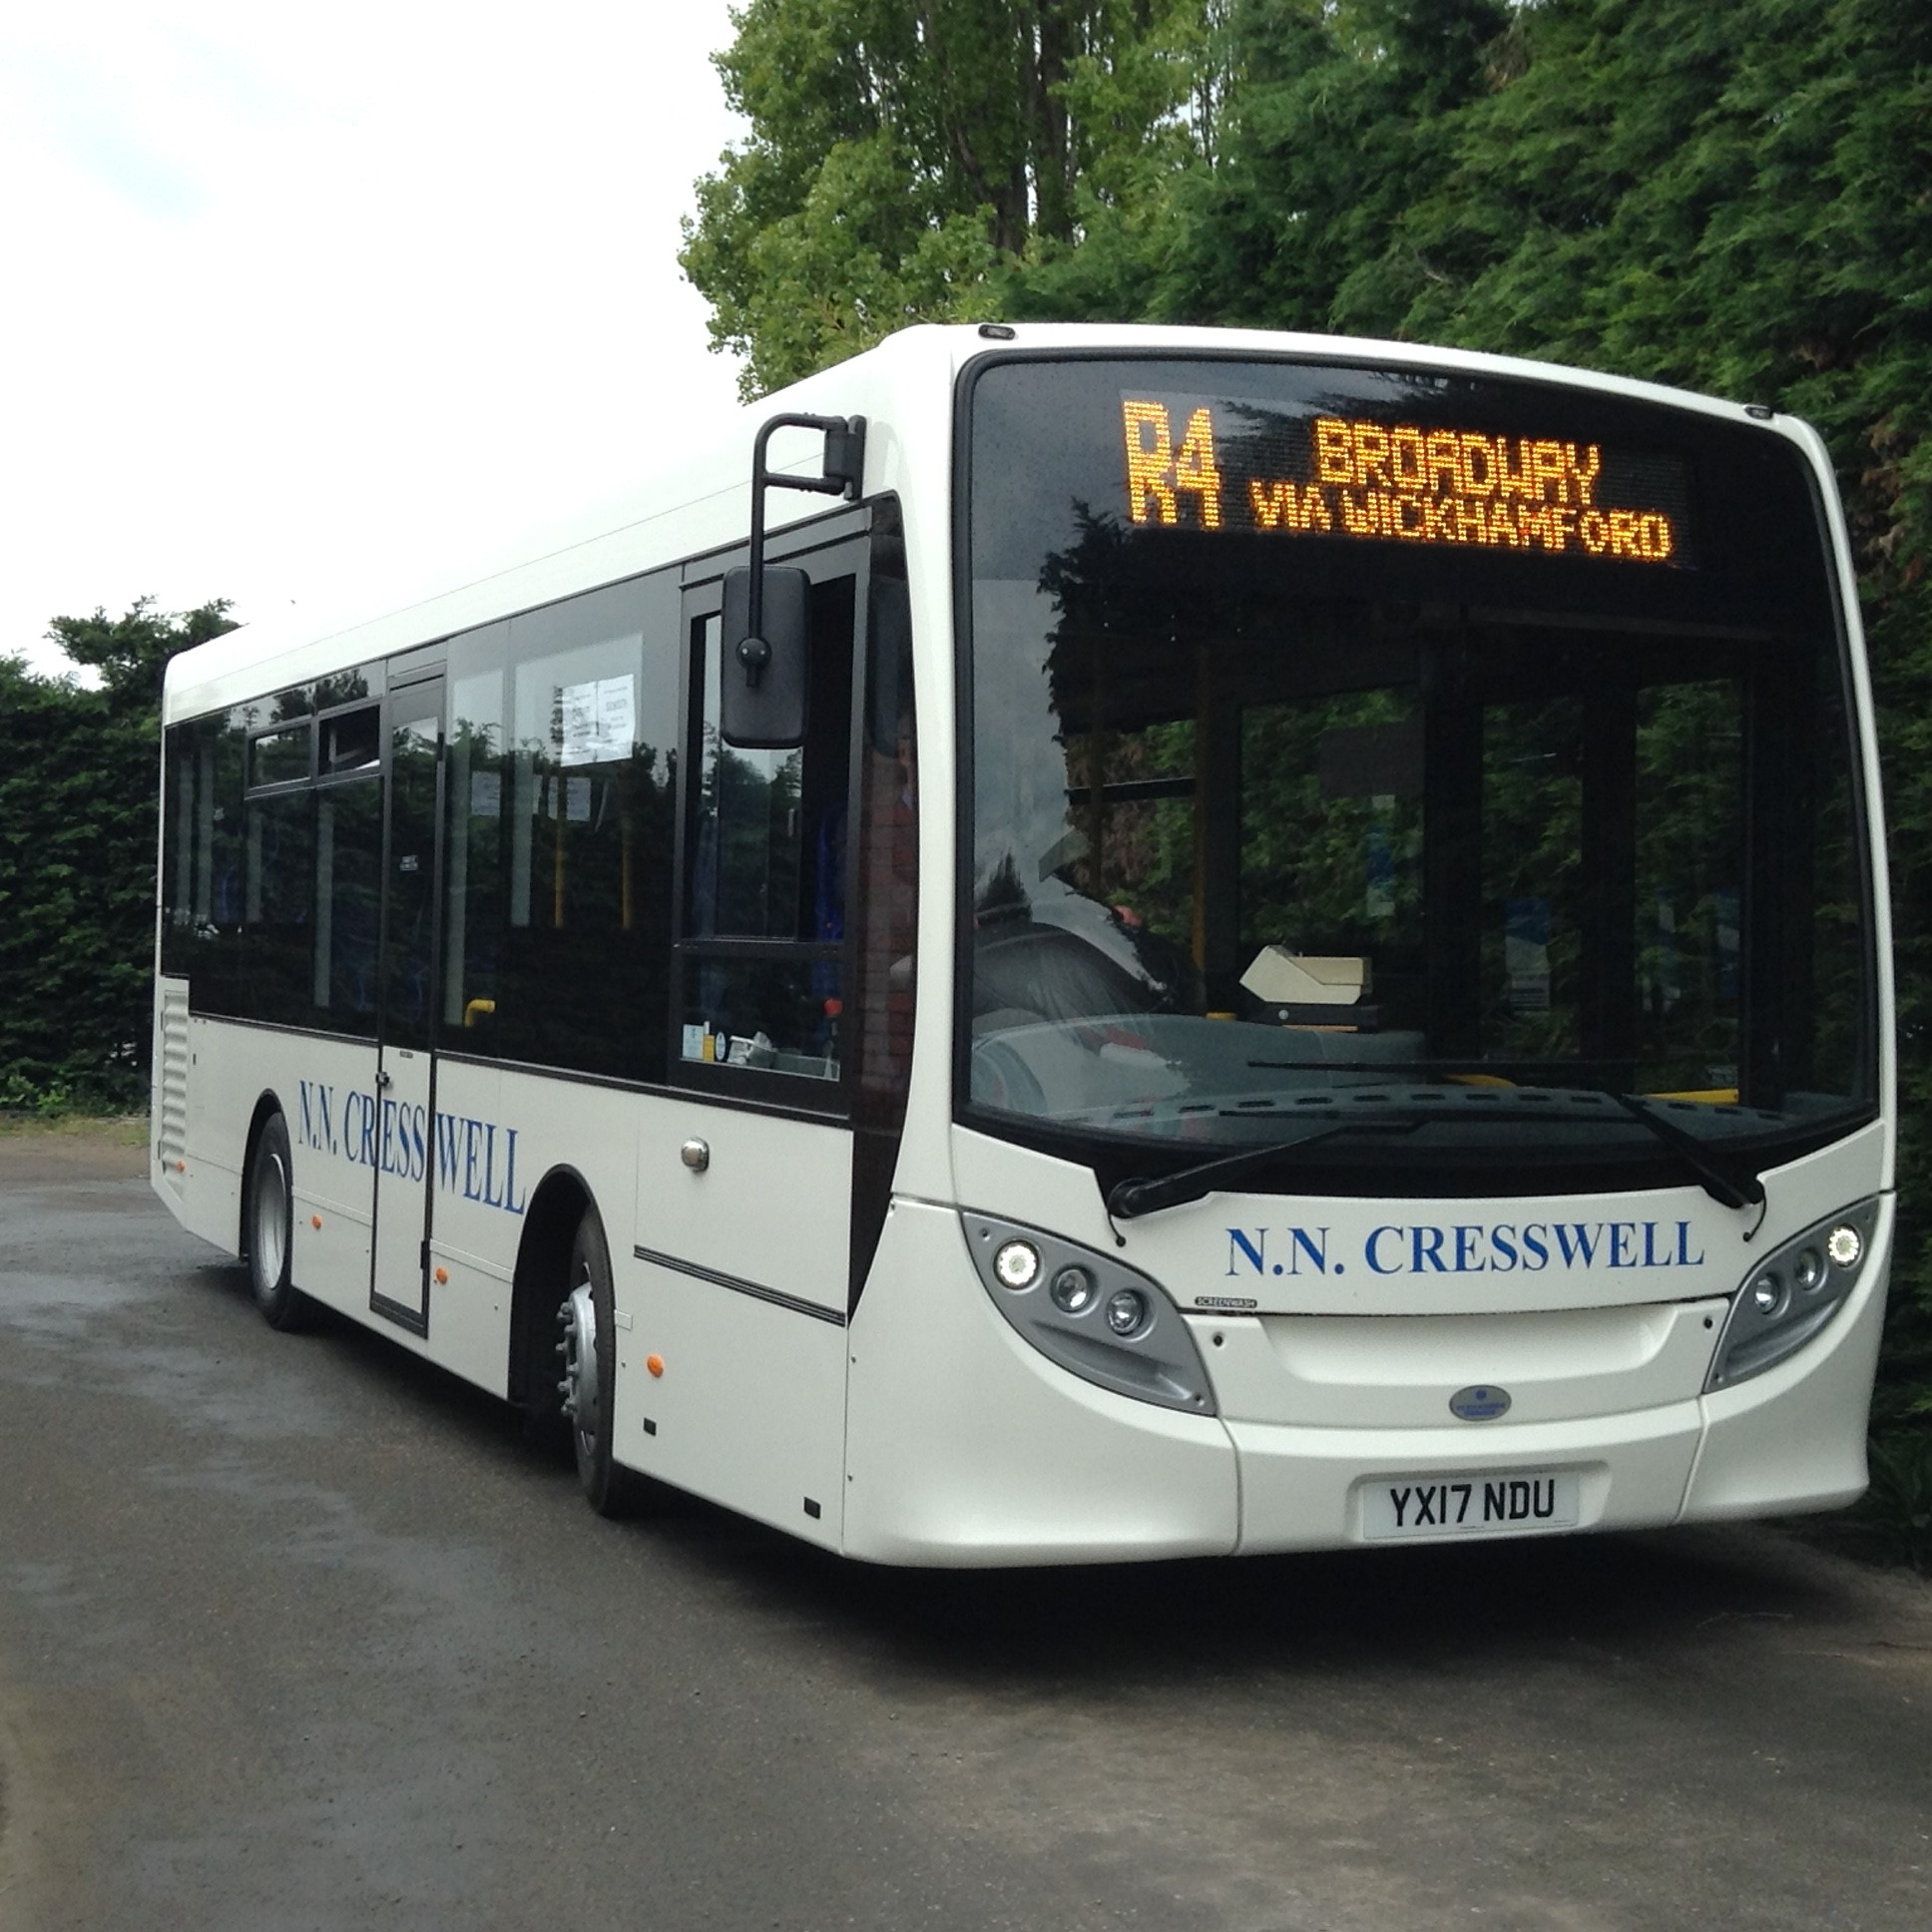 Another Enviro 200 supplied by Mistral!